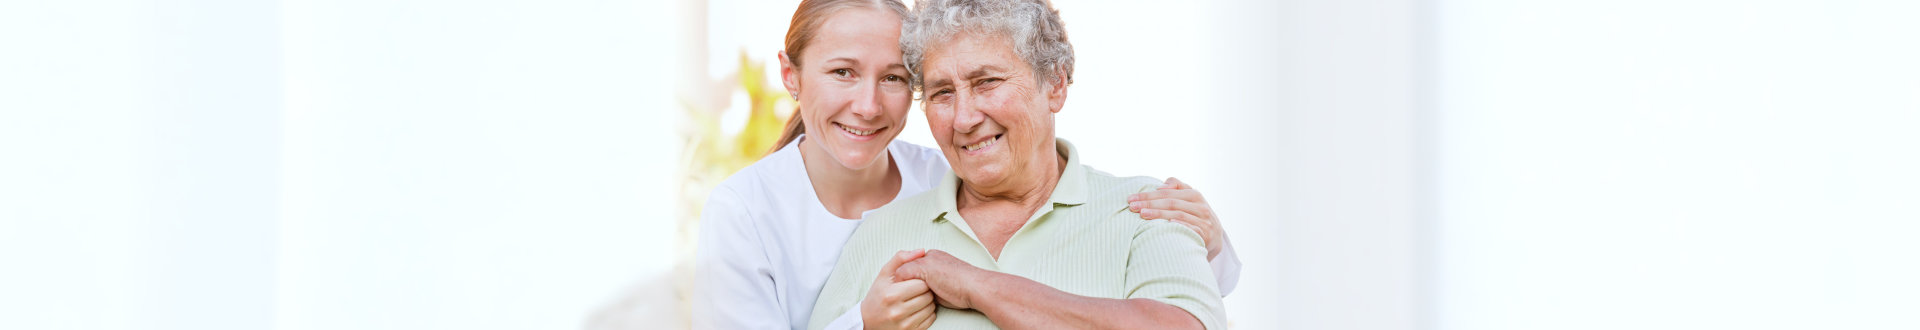 beautiful caregiver with senior woman smiling